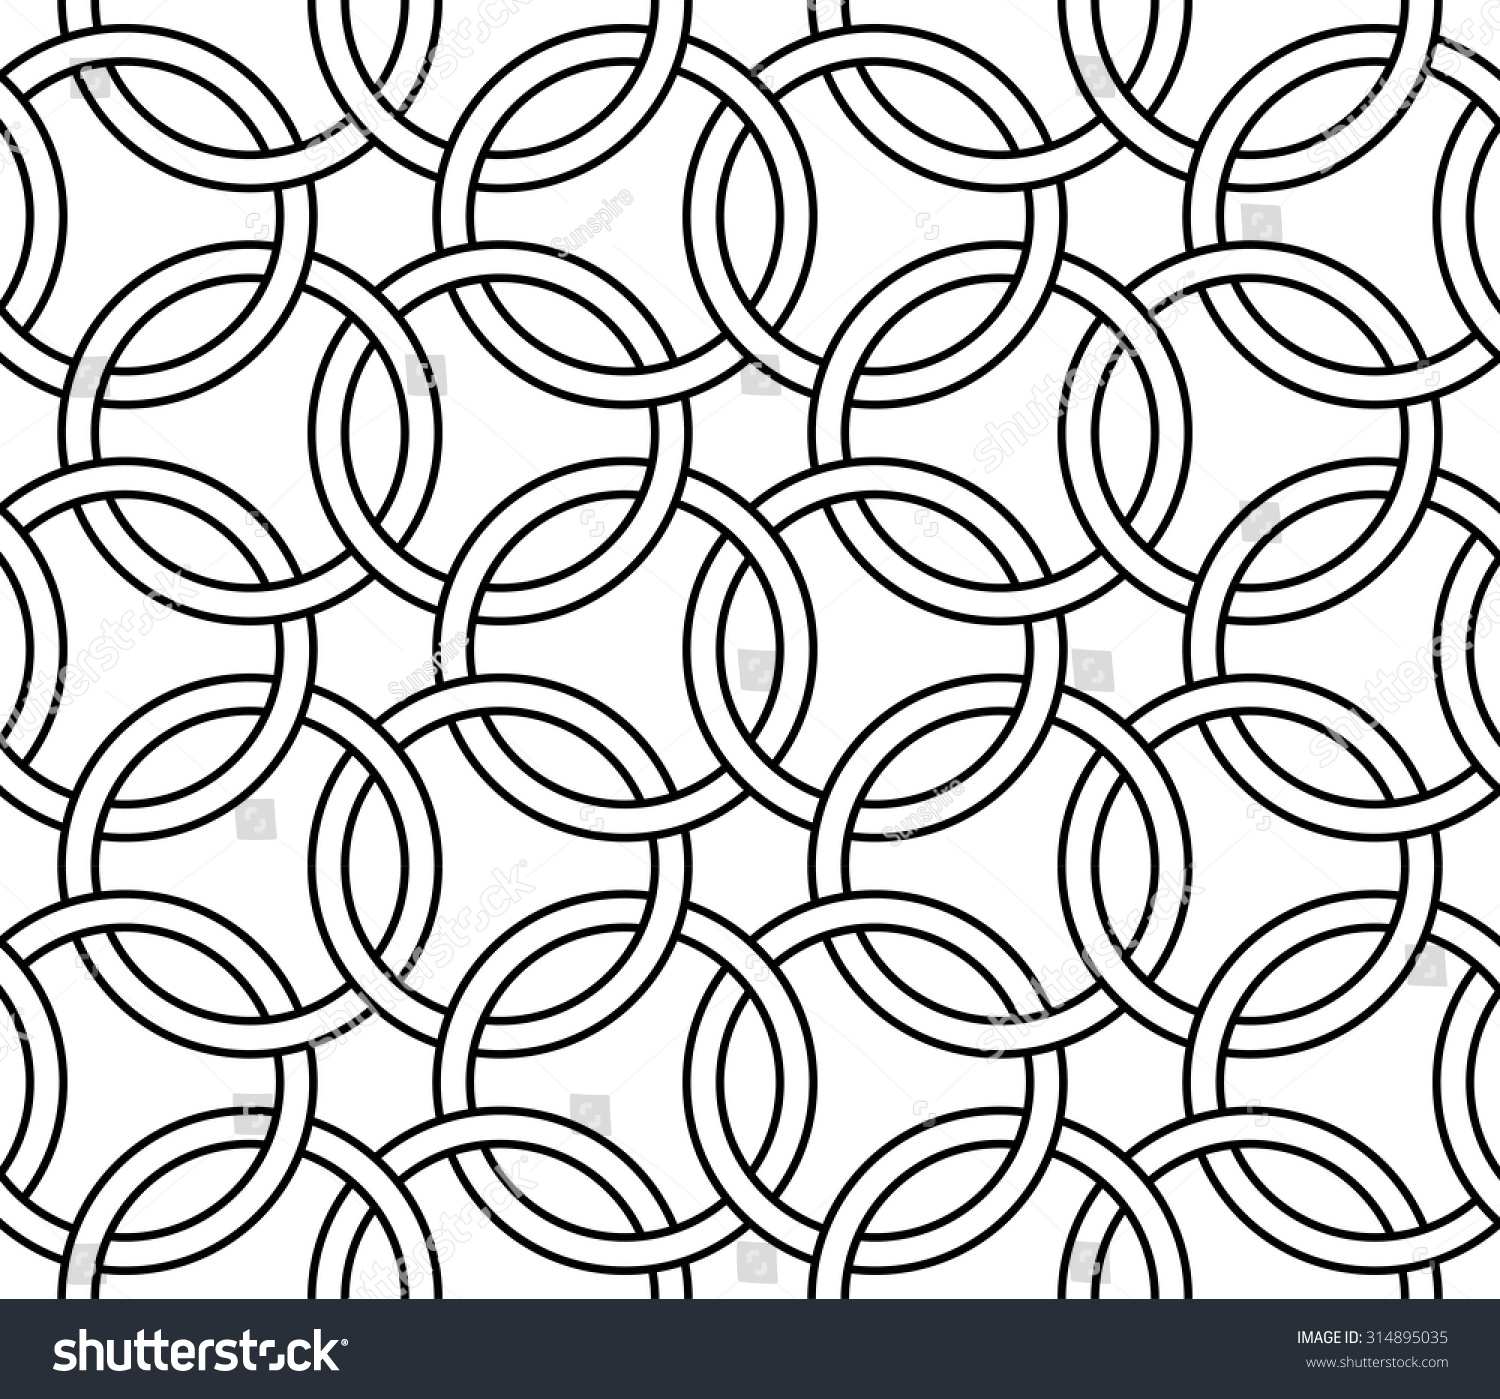 Bed sheets texture seamless - Vector Modern Seamless Pattern Geometry Circles Black And White Textile Print Stylish Background